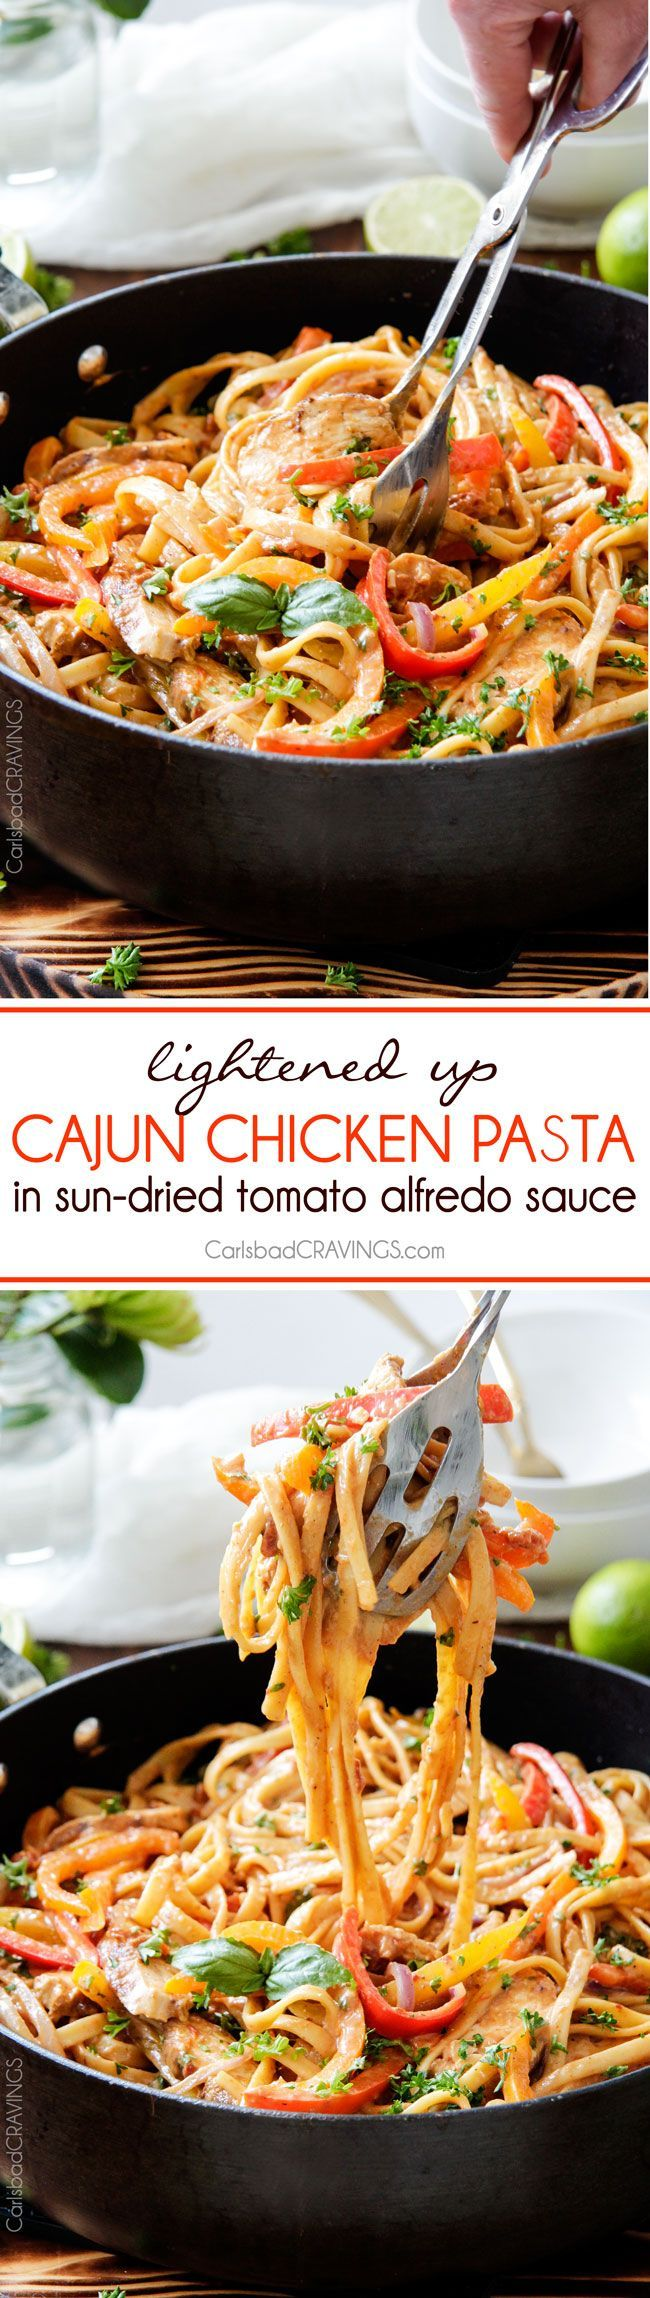 Cajun Chicken Pasta in the most amazing flavor bursting creamy Sun-dried Tomato Alfredo Sauce! The juicy spice rubbed chicken melts in your mouth and the pasta is 10000x better than any restaurant at a fraction of the cost and calories!